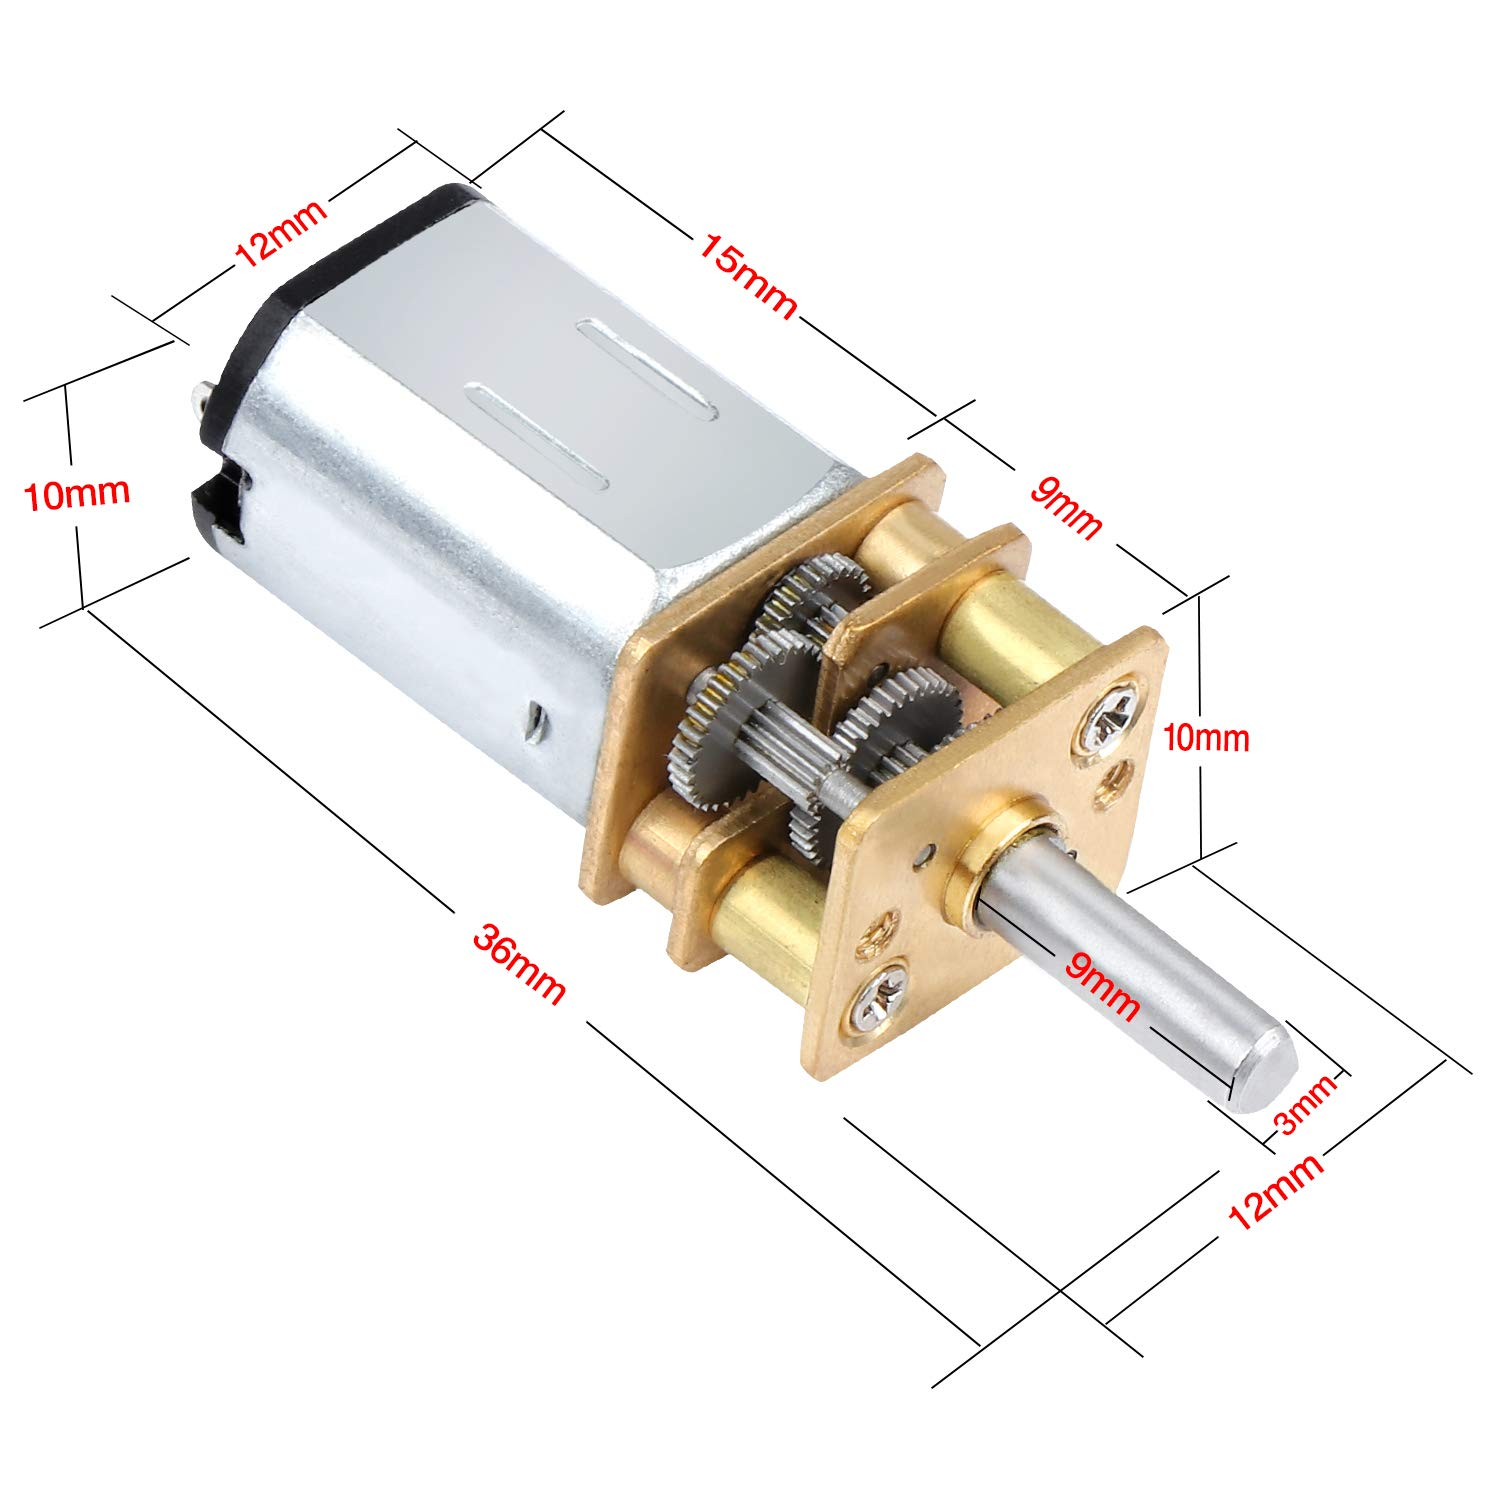 Aussel DC 6V 30RPM Mini Gear Box Motor 3-Pack for RC Car Robot Model DIY Engine Toy Micro Speed Reduction Motor with 2 Terminals